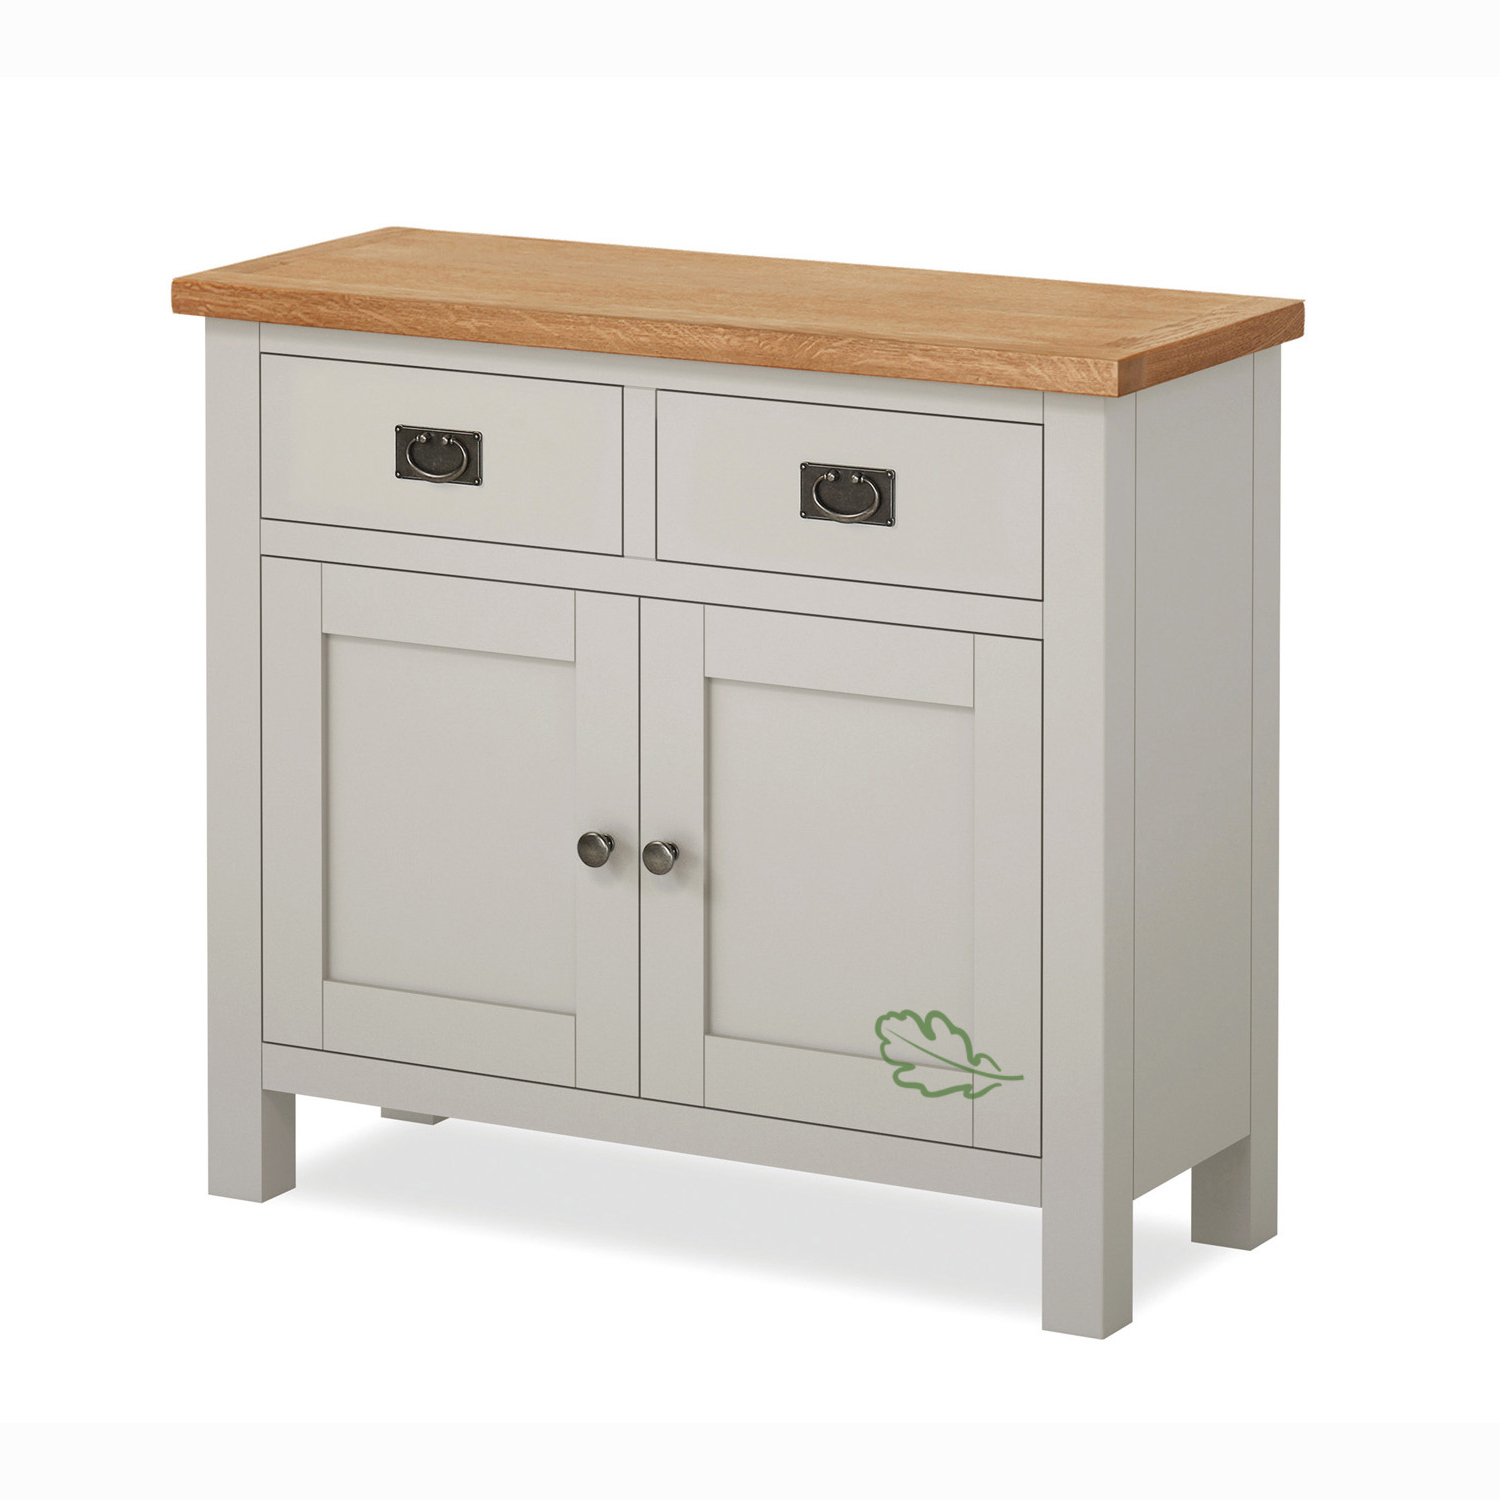 Sideboards Archives – Cumbria Oak In Widely Used White Wash 4 Door Sideboards (View 19 of 20)